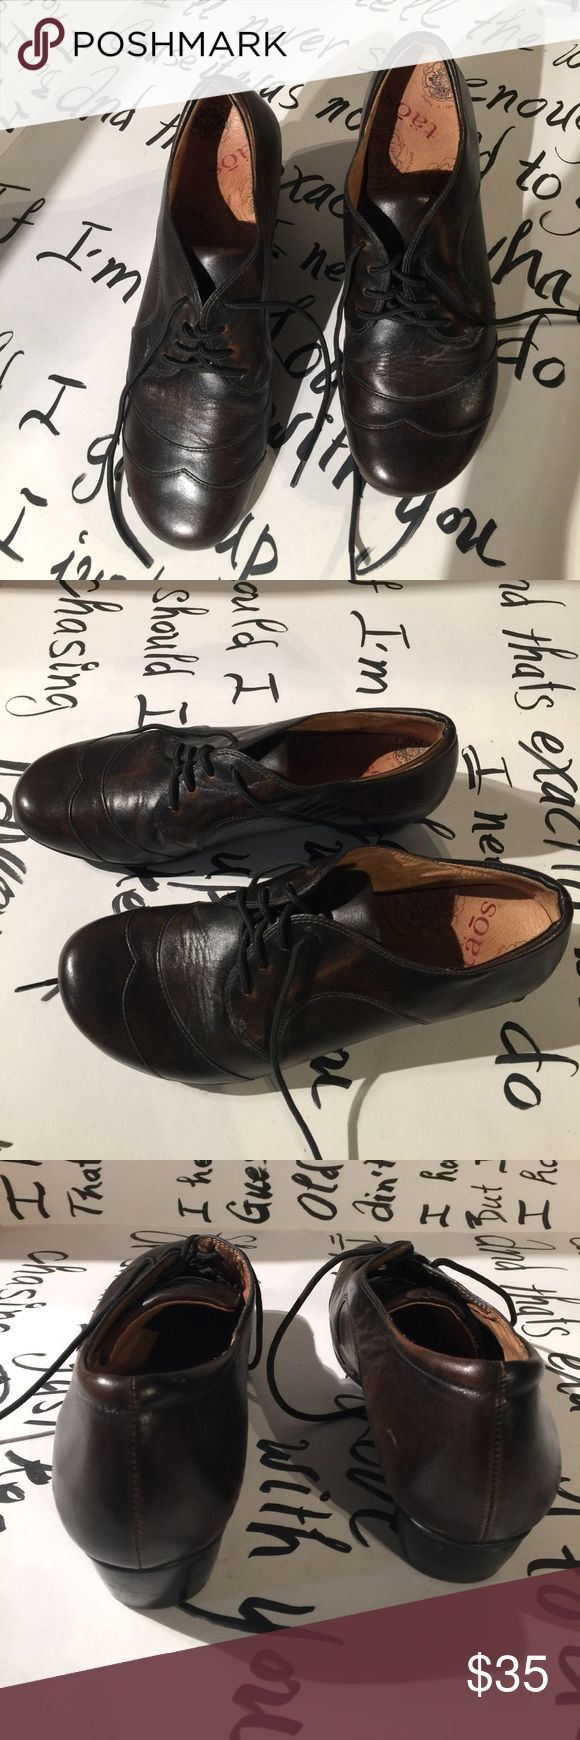 EUC Taos shoes Taos is an excellent shoe manufacturer, fairly hard to find, it is really for people in the know .  They build their brand by word of mouth more than anything. Amazing quality and execution Taos Footwear Shoes Sneakers